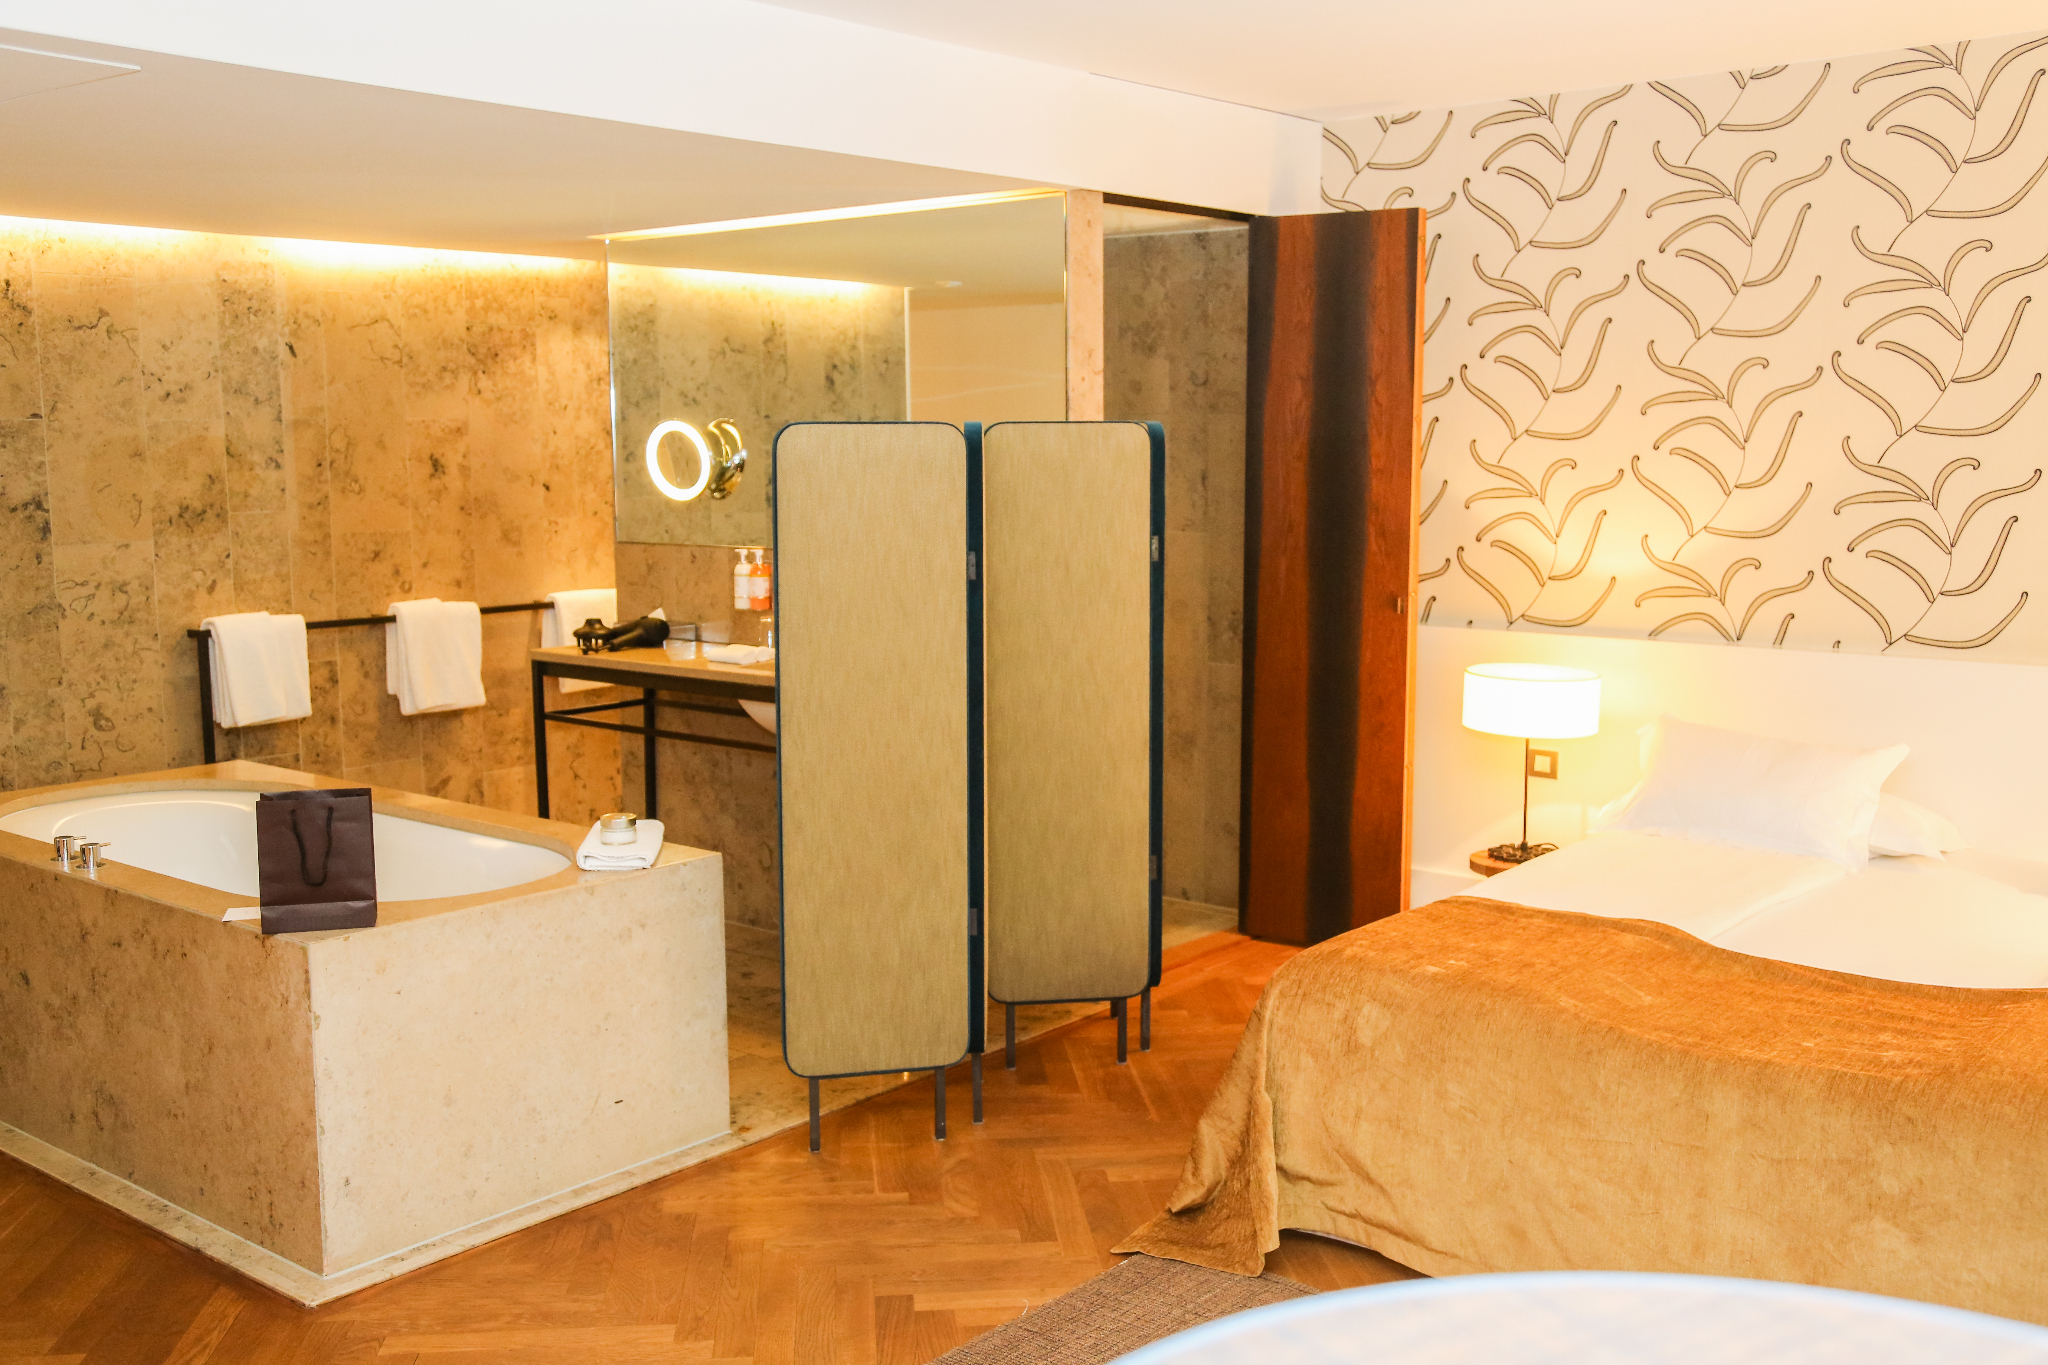 MOD-by-Monique-Lifestyle-Travel-Cortiina-Hotel-Munich-3